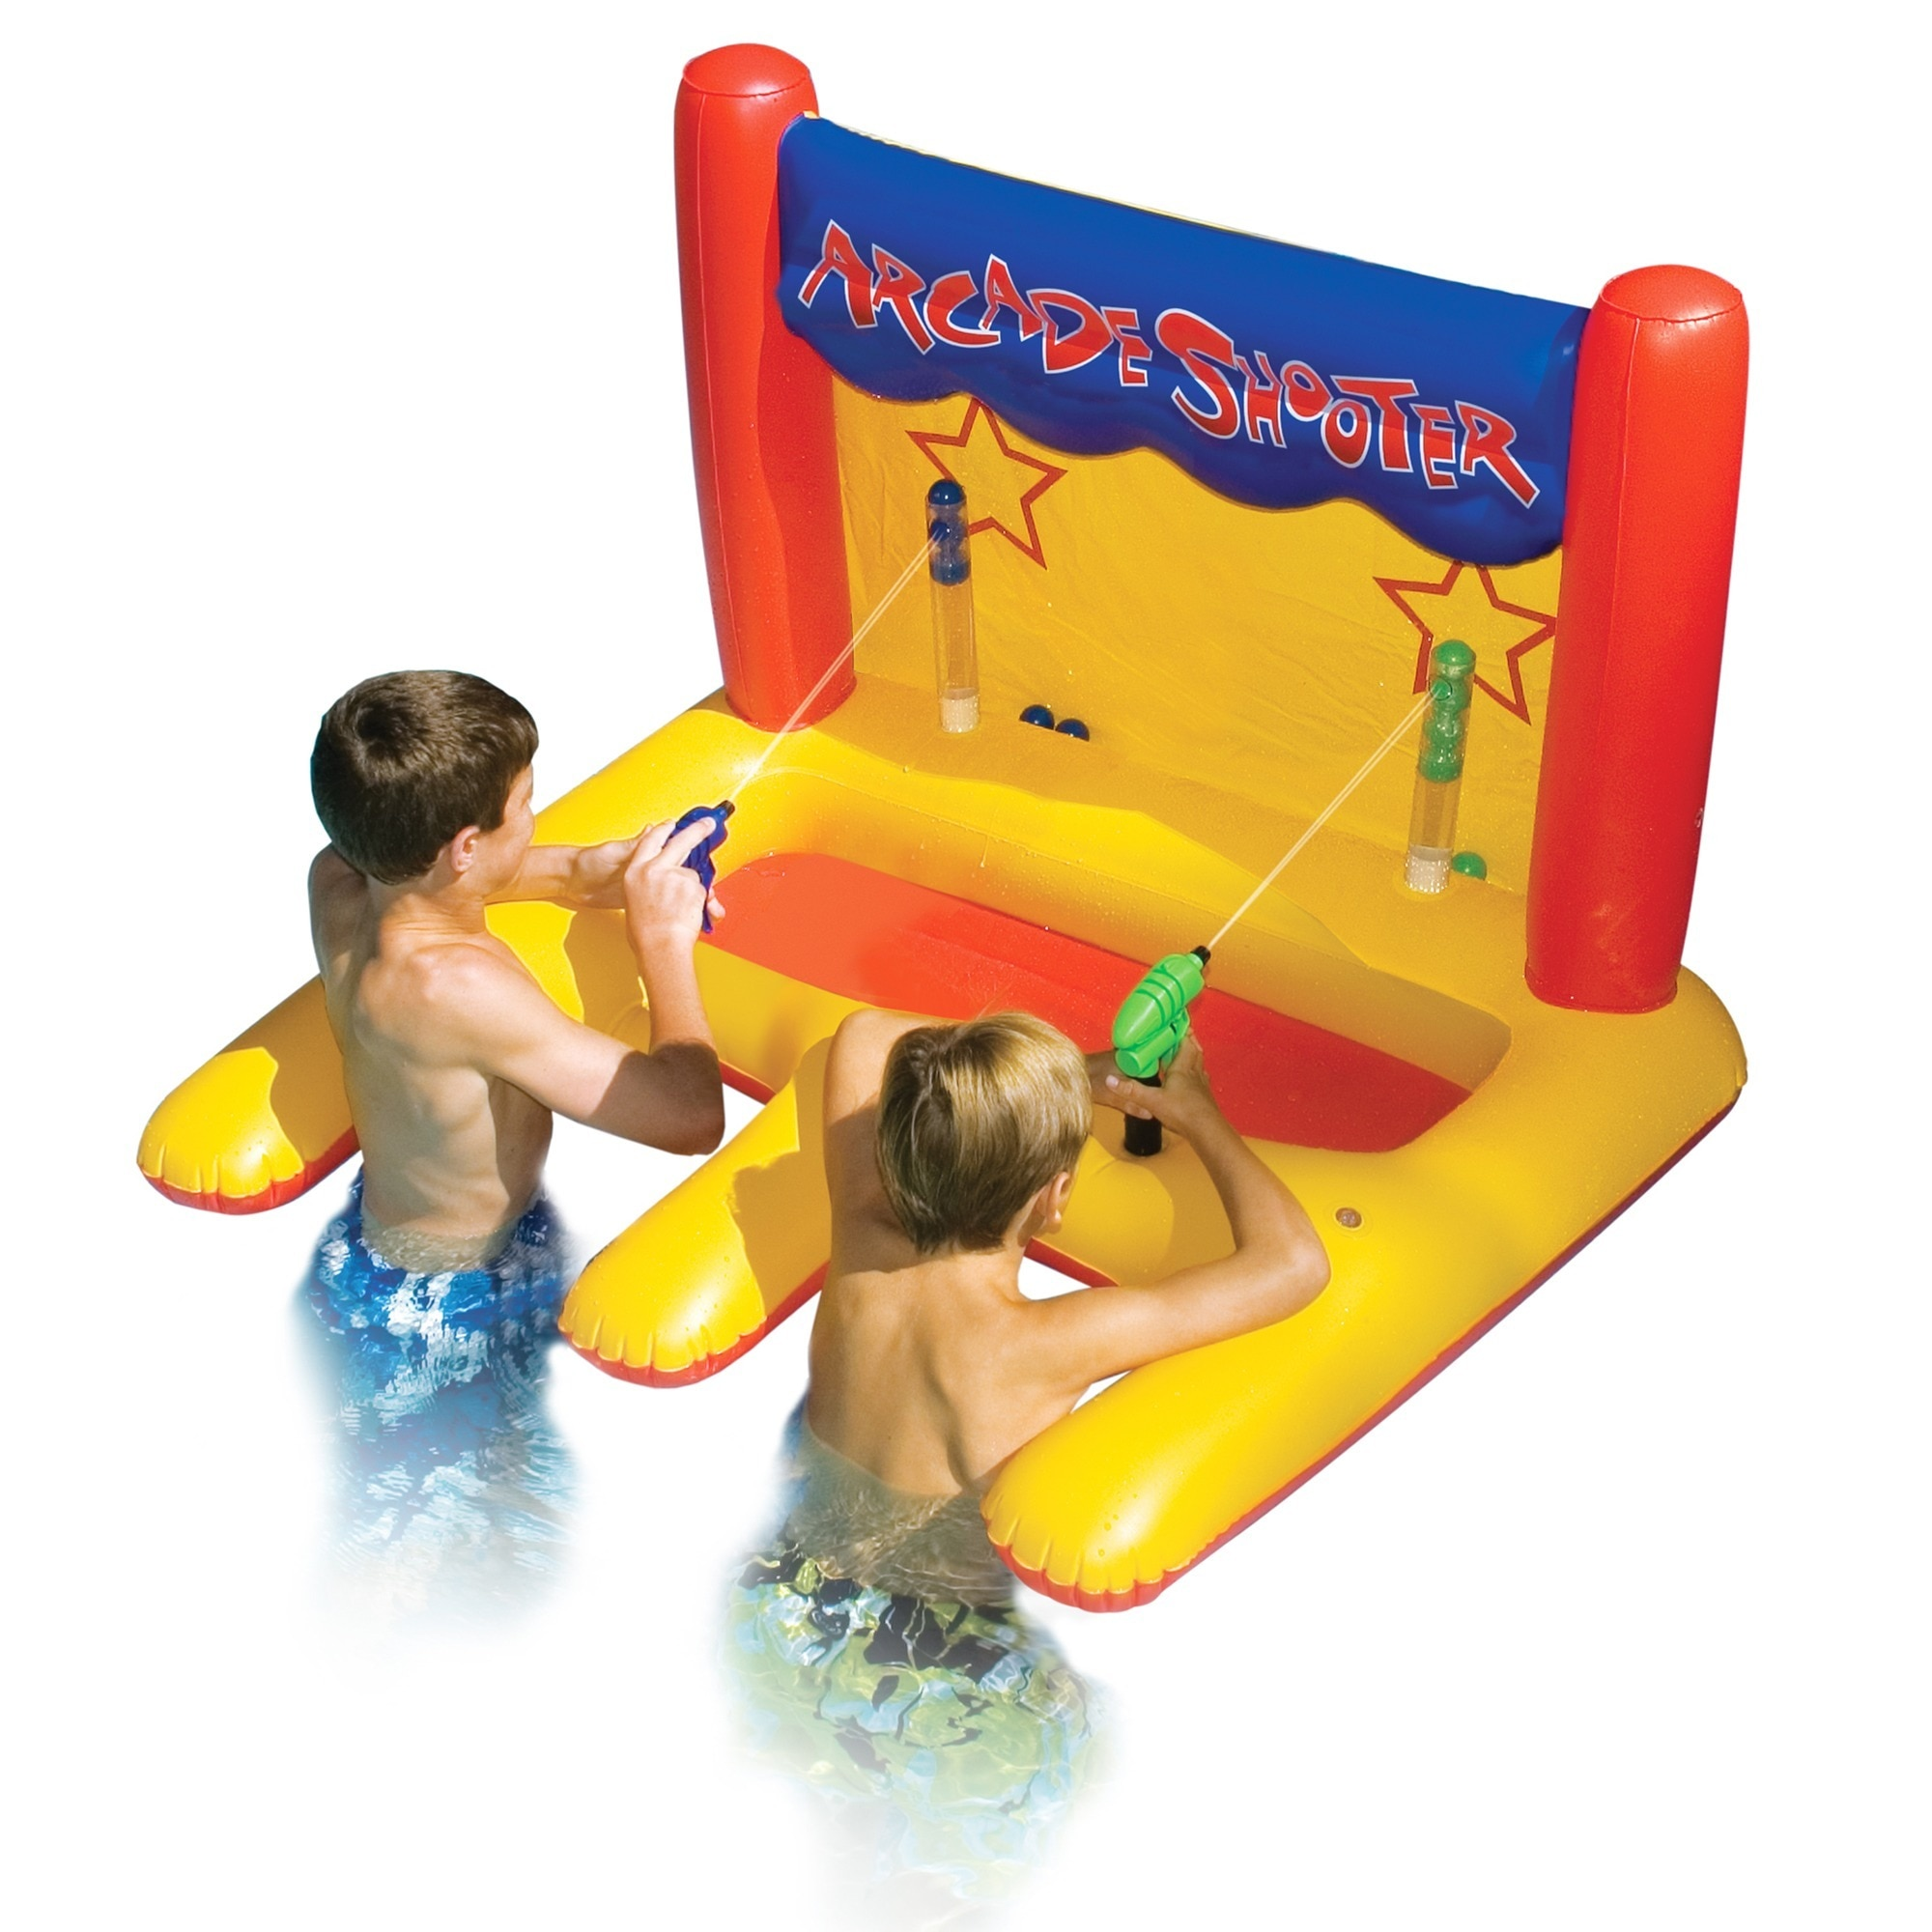 Swimline Dual Arcade Shooter Inflatable Pool Toy by Overstock